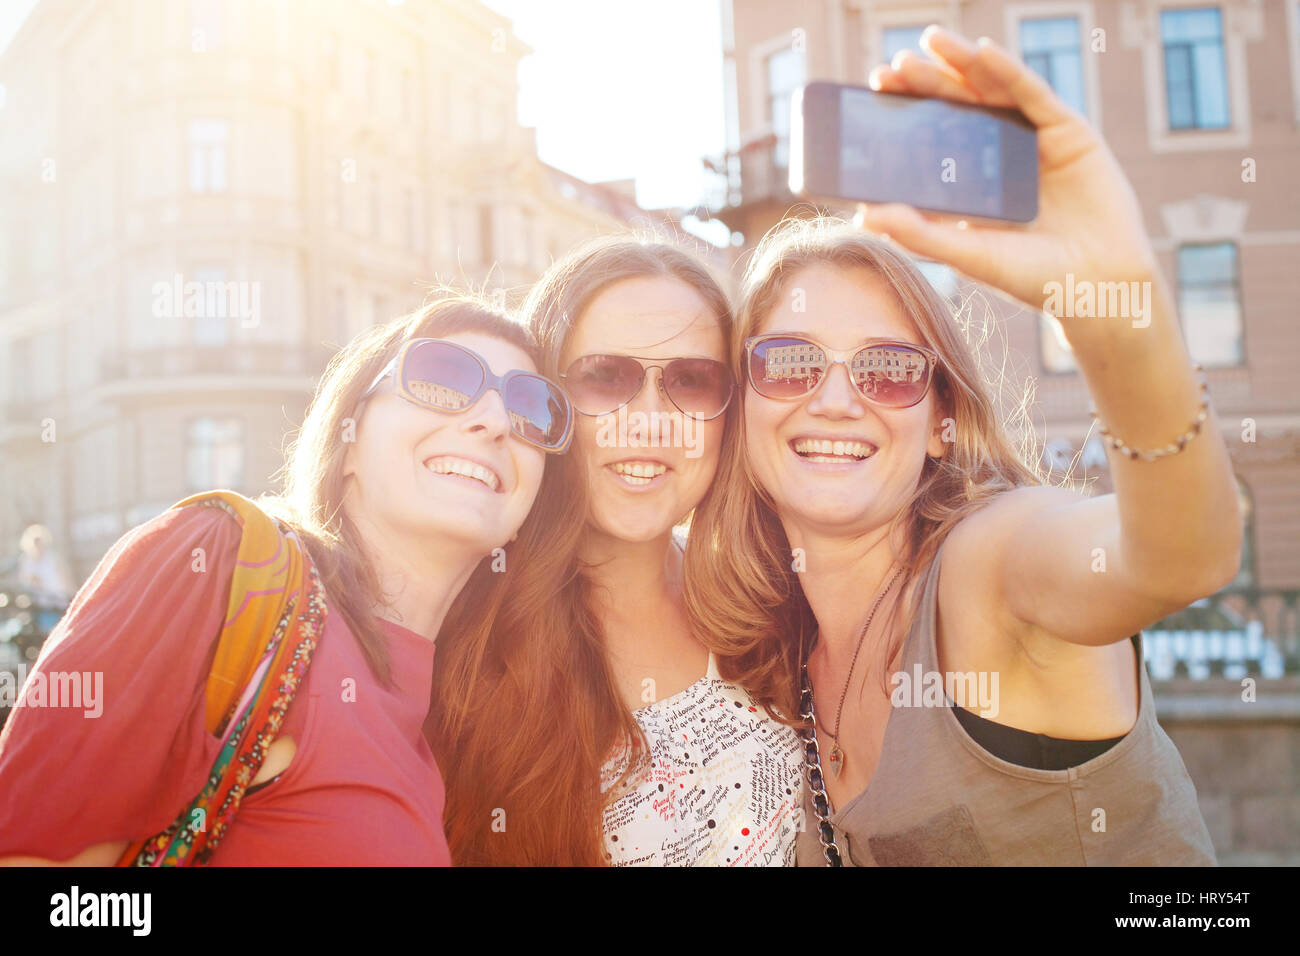 tourists in european city, travel in Europe, group of happy friends taking photo selfy - Stock Image